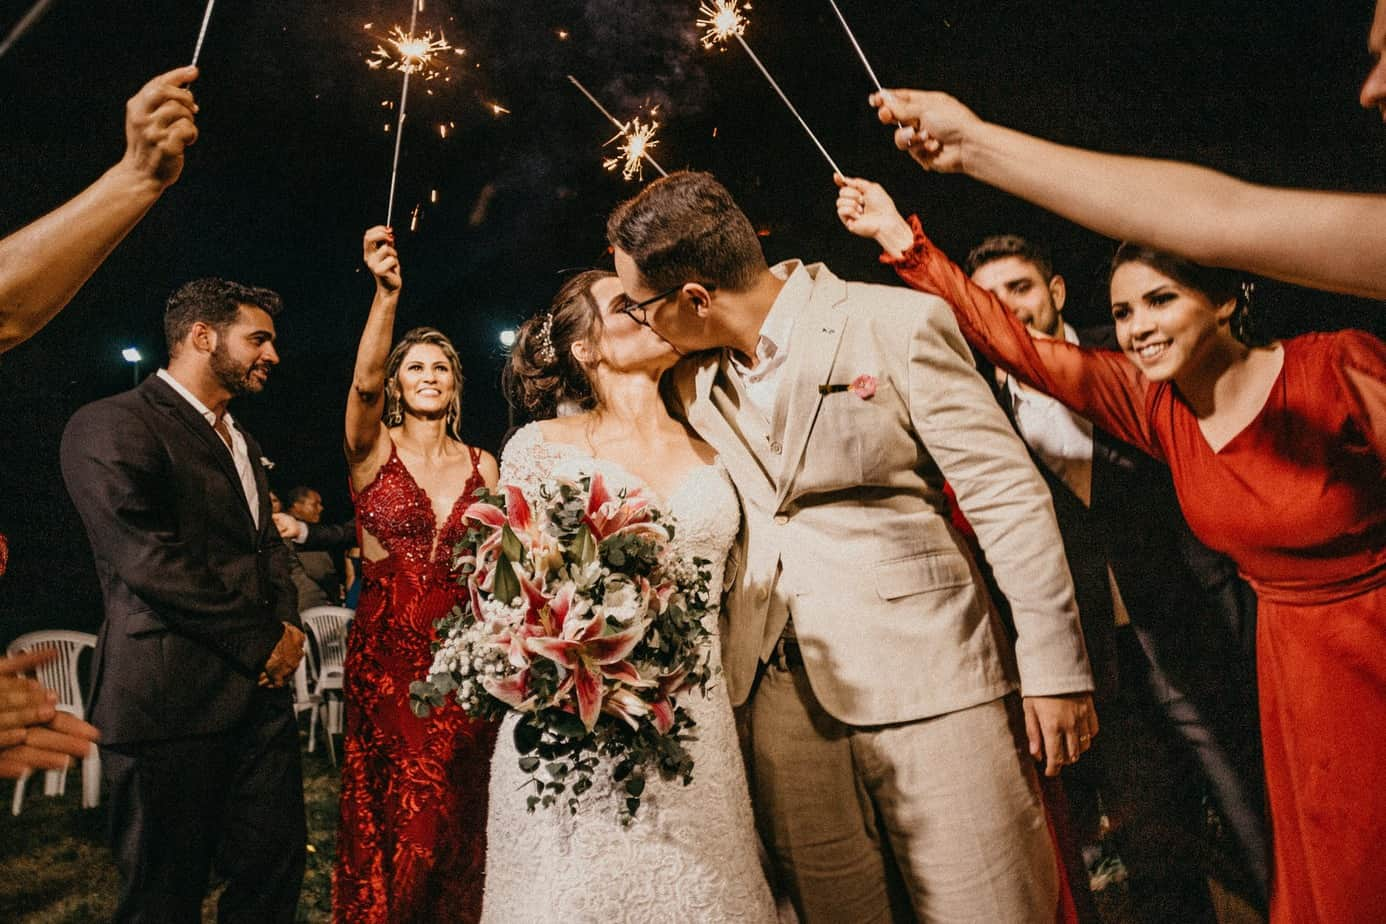 How To Have A Dream Wedding On A Budget For Your Very Special Day (2021)